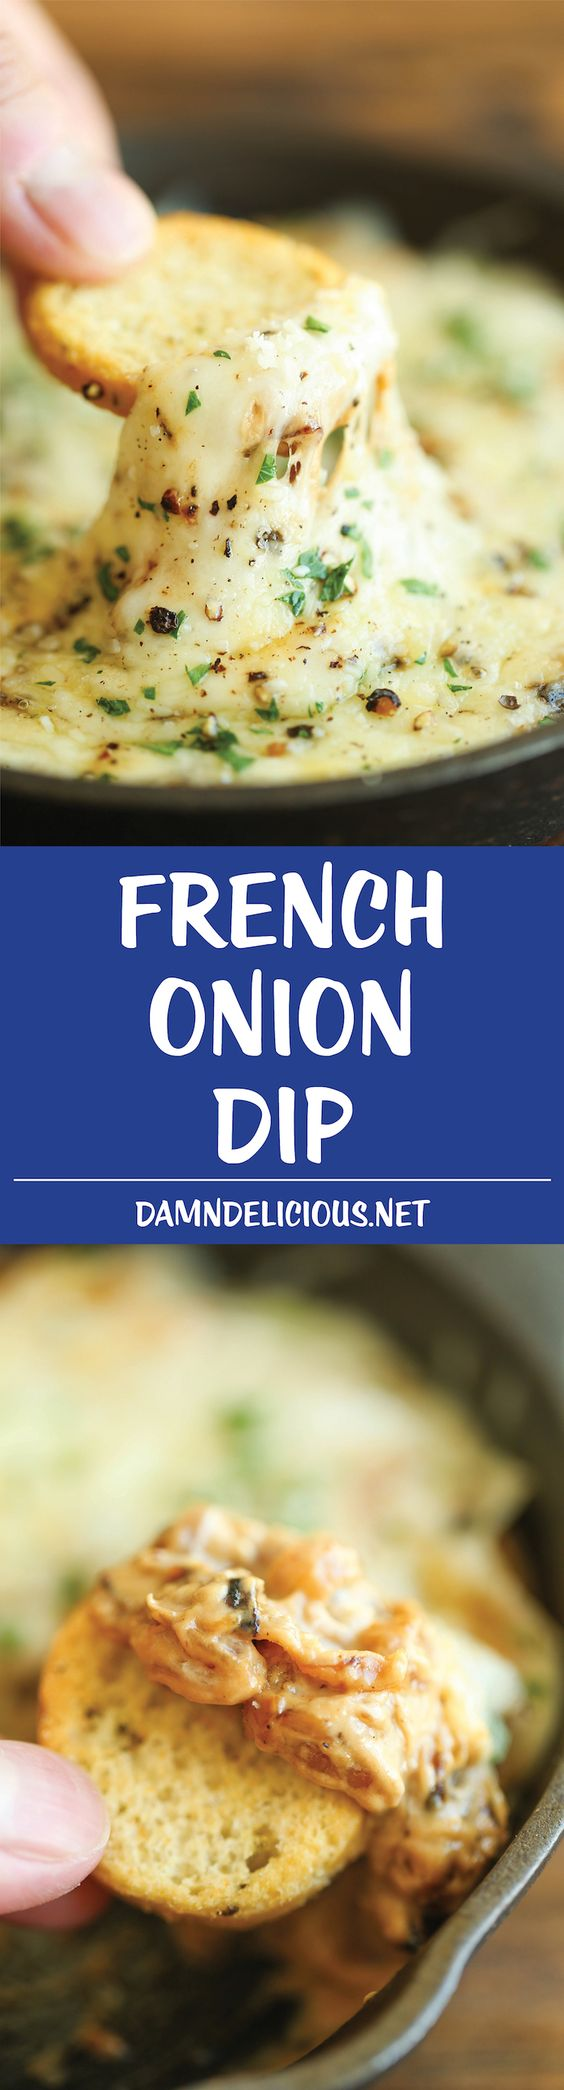 more onion dip french onion dip french onion french onion soups onion ...